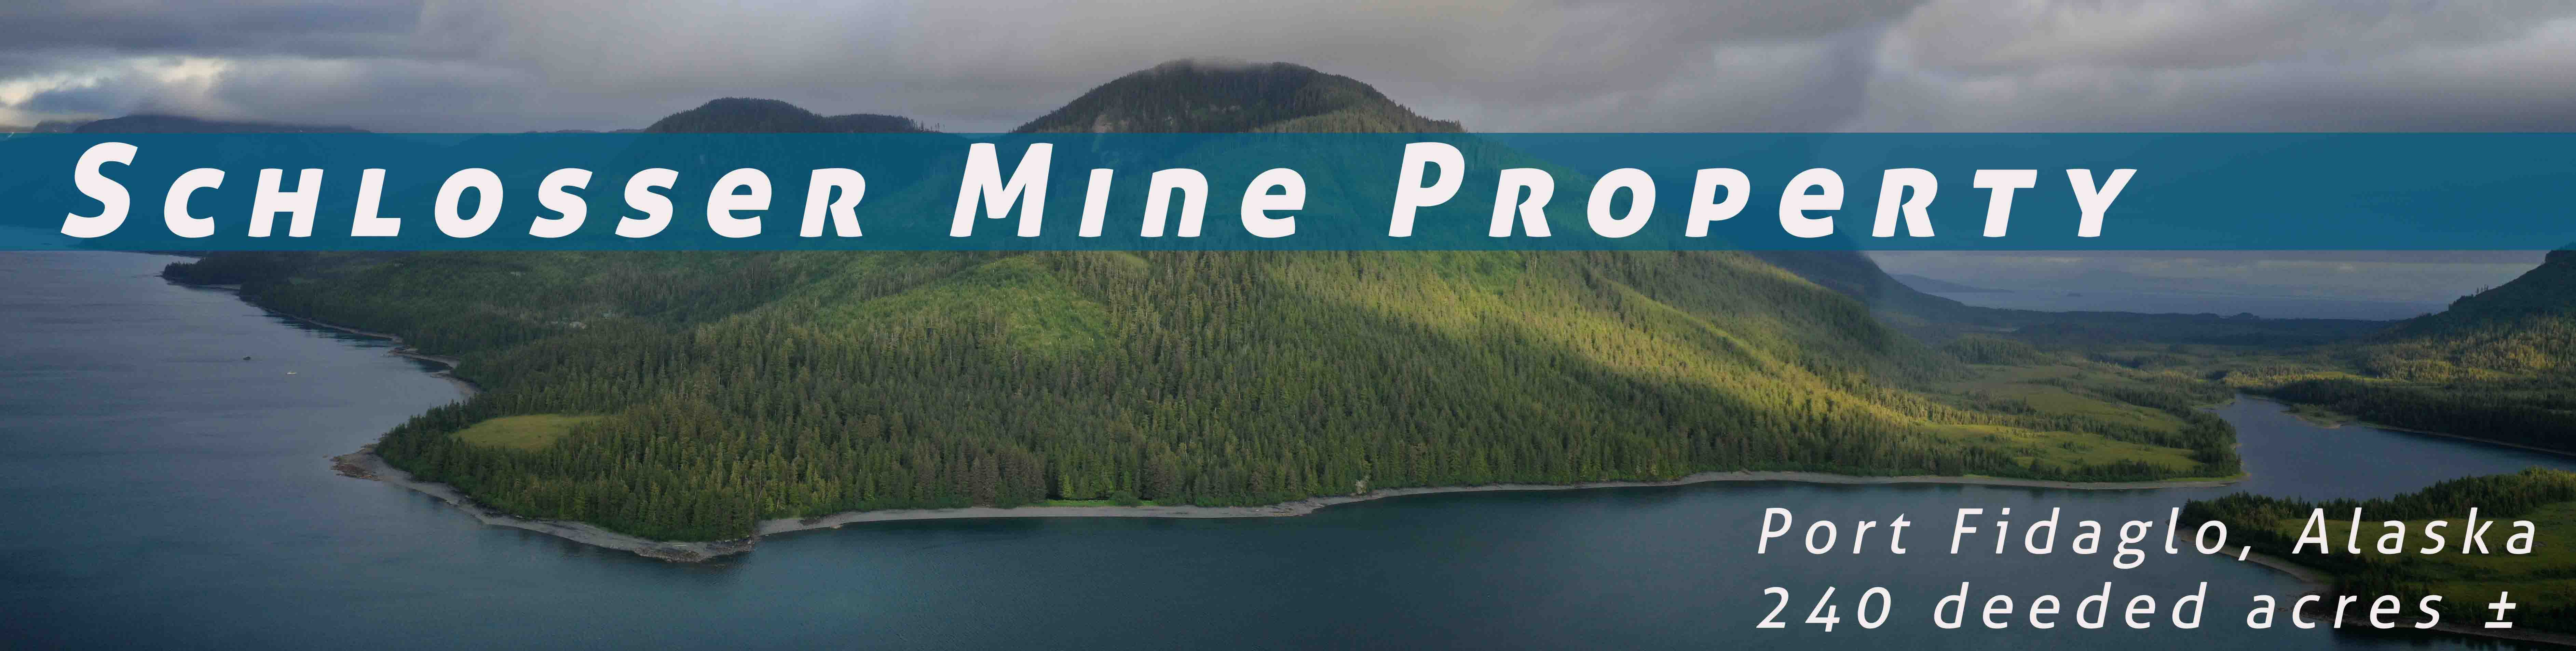 Alaska land for sale